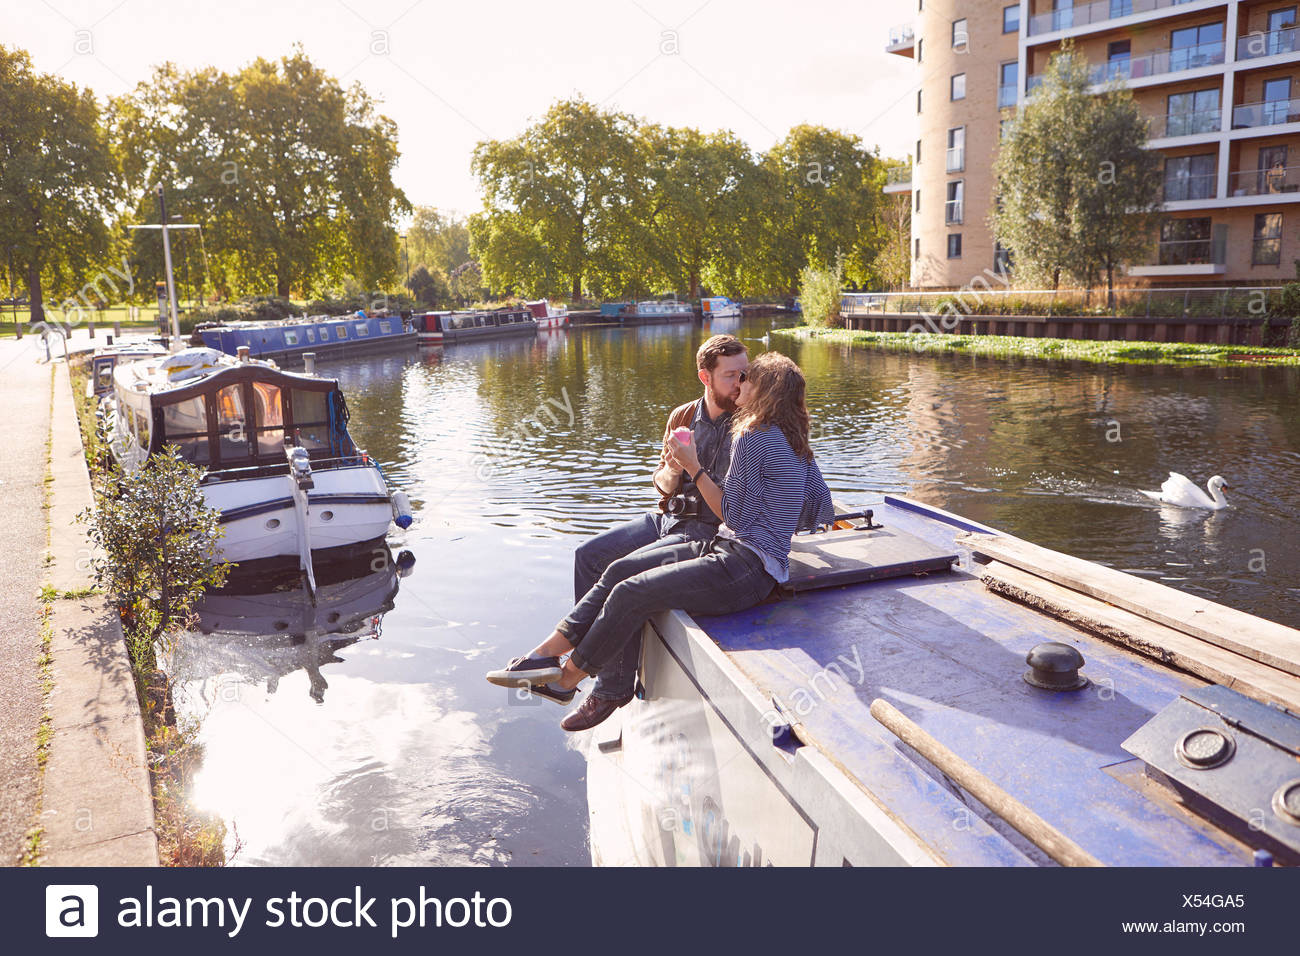 Couple on canal boat - Stock Image